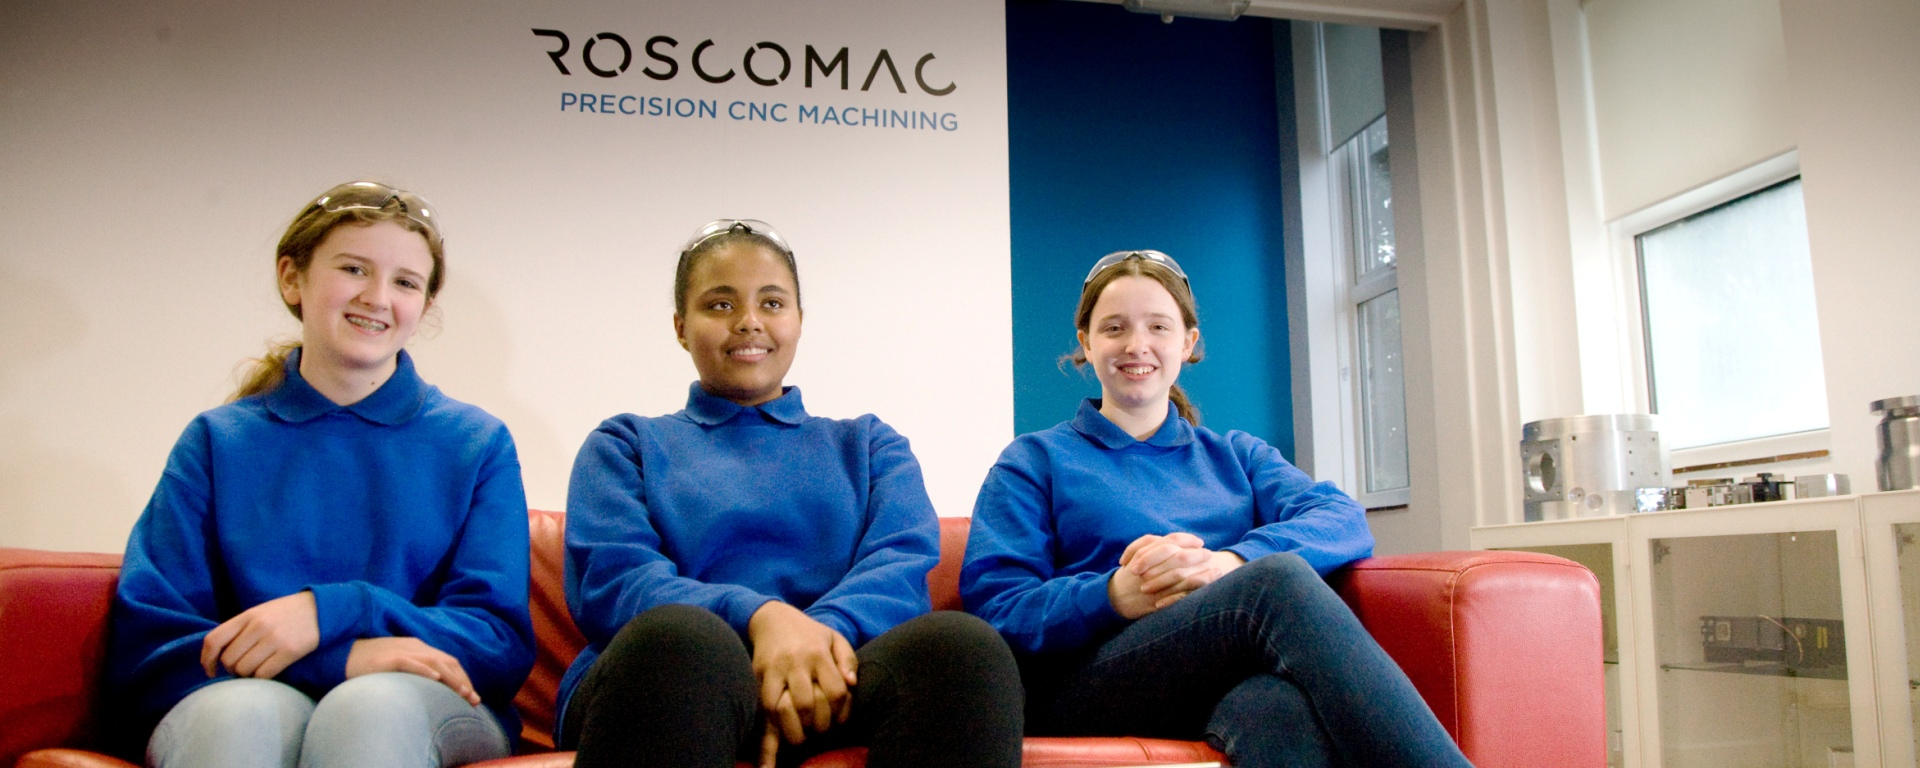 Careers at Roscomac